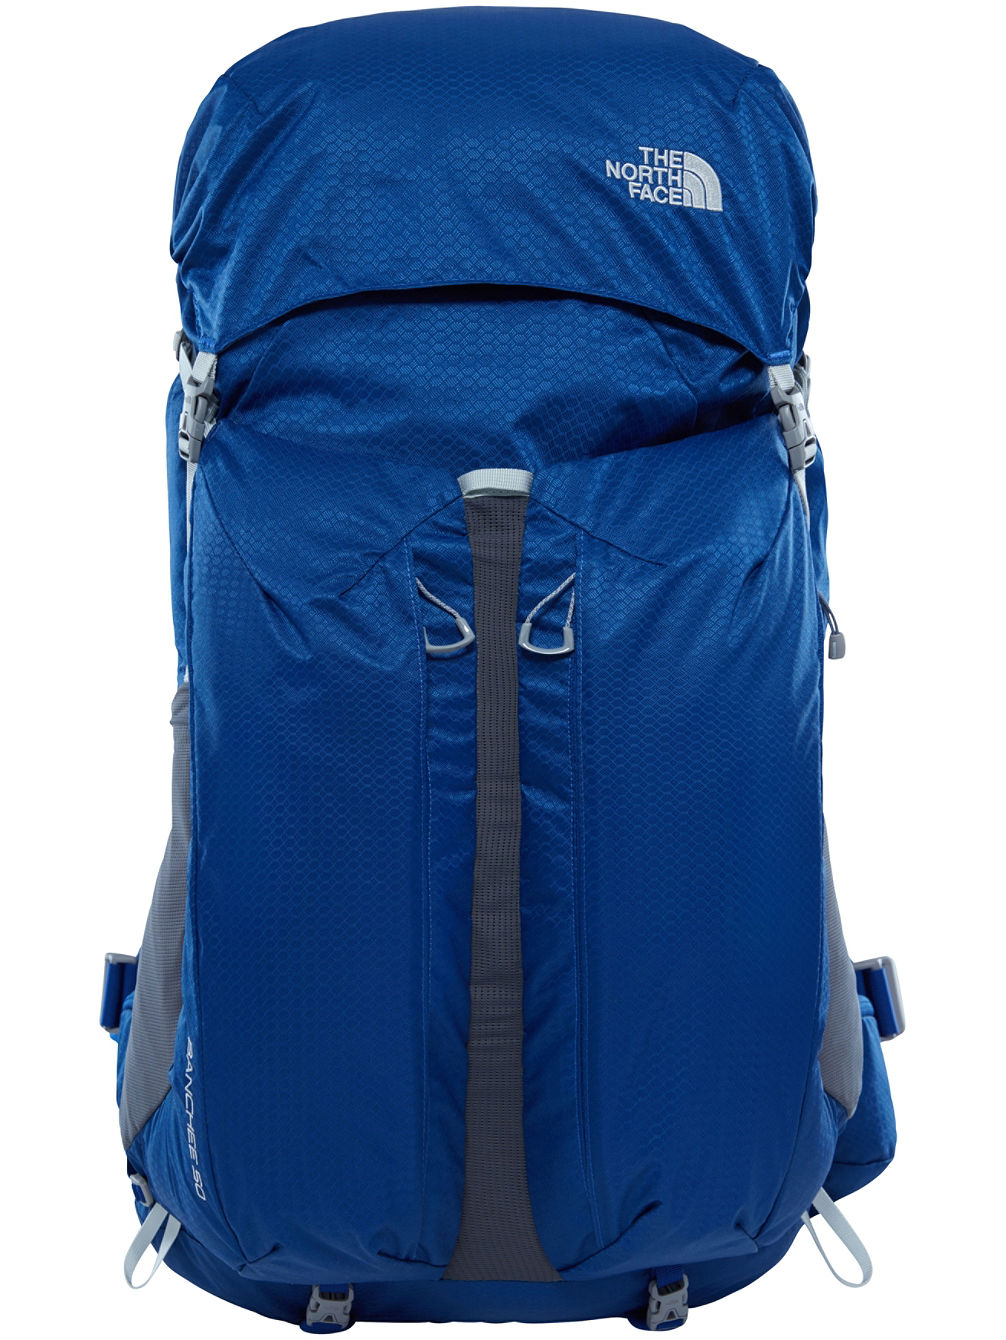 Banchee 50 Backpack